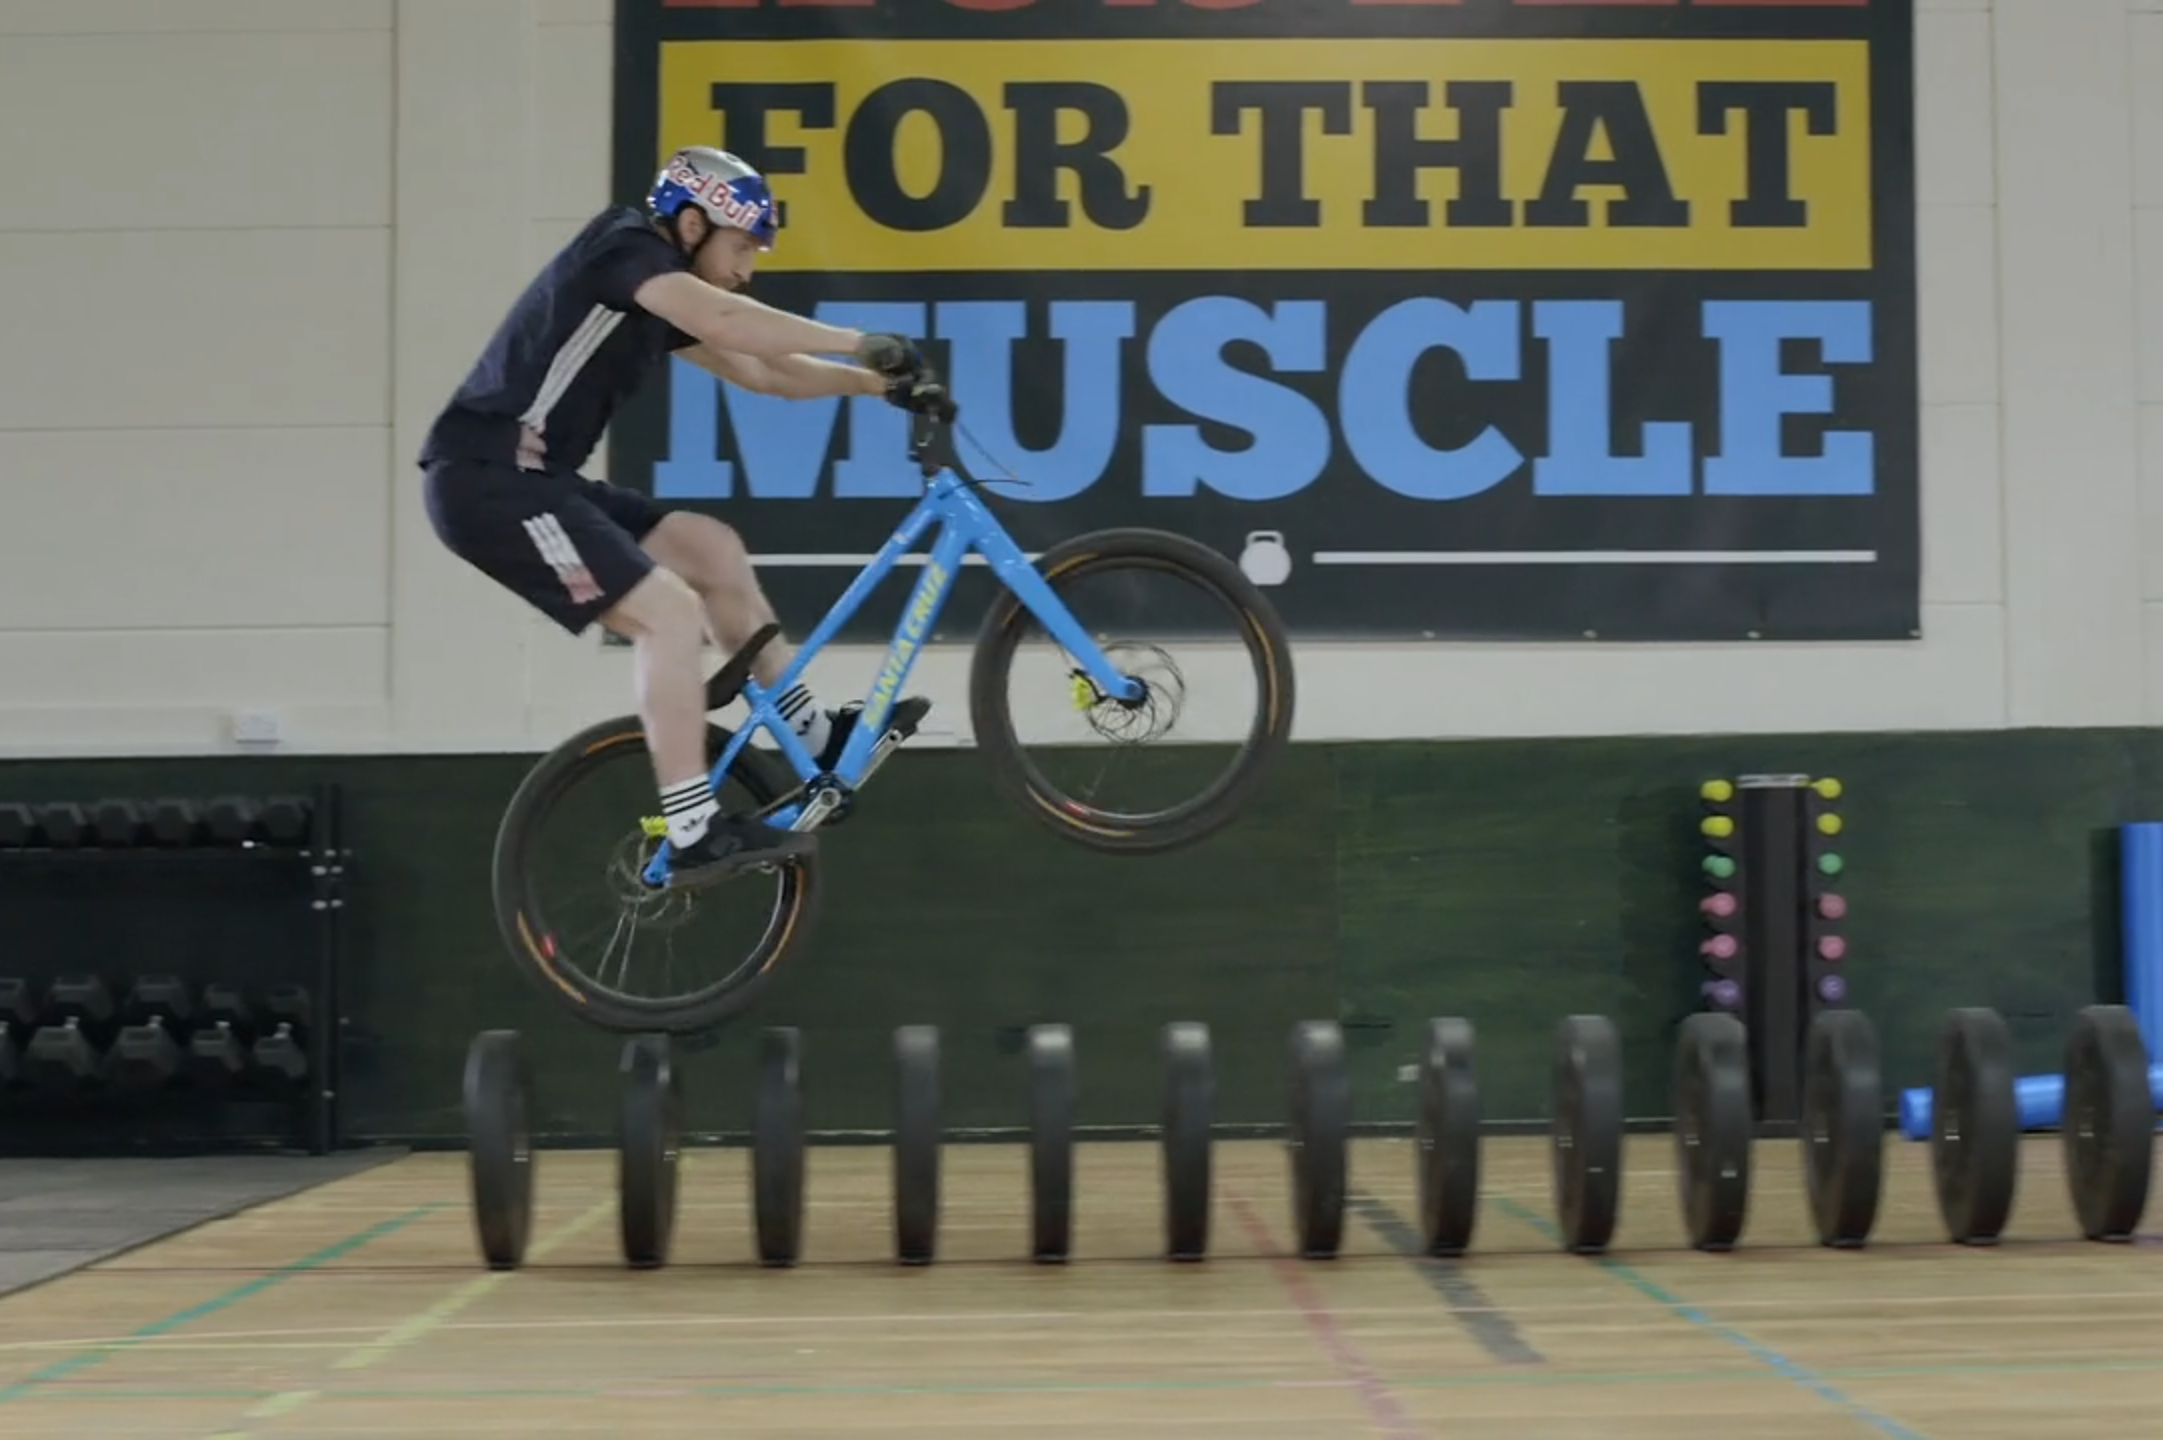 Behind the scenes of Danny MacAskill's Gymnasium - MBR